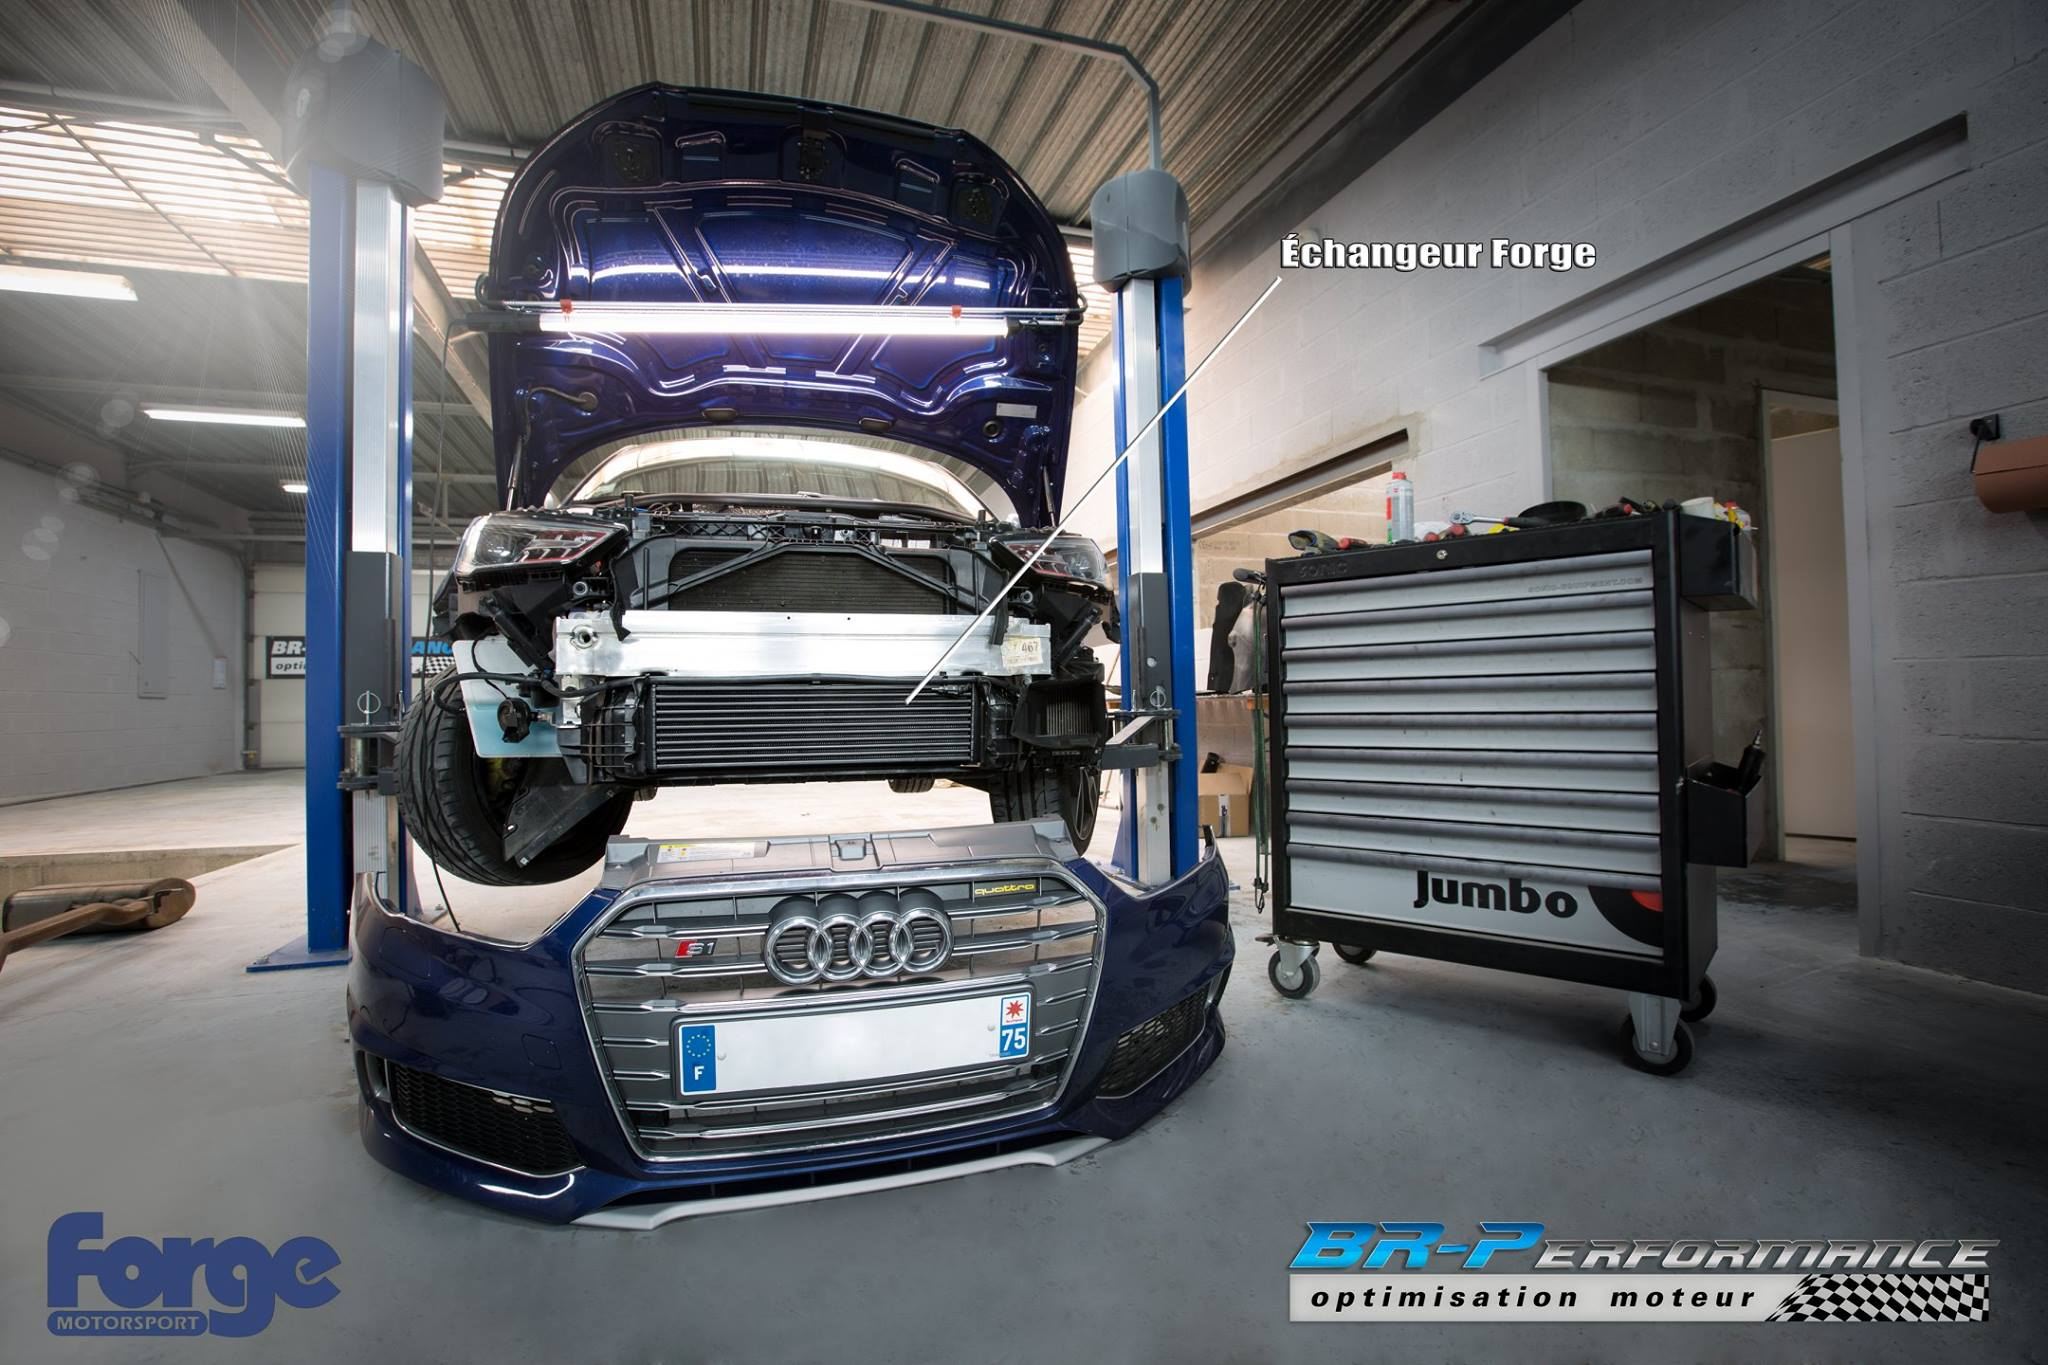 Stage 3 Audi S1 Gets 384 HP Thanks to Milltek Sports Cat, New Turbo